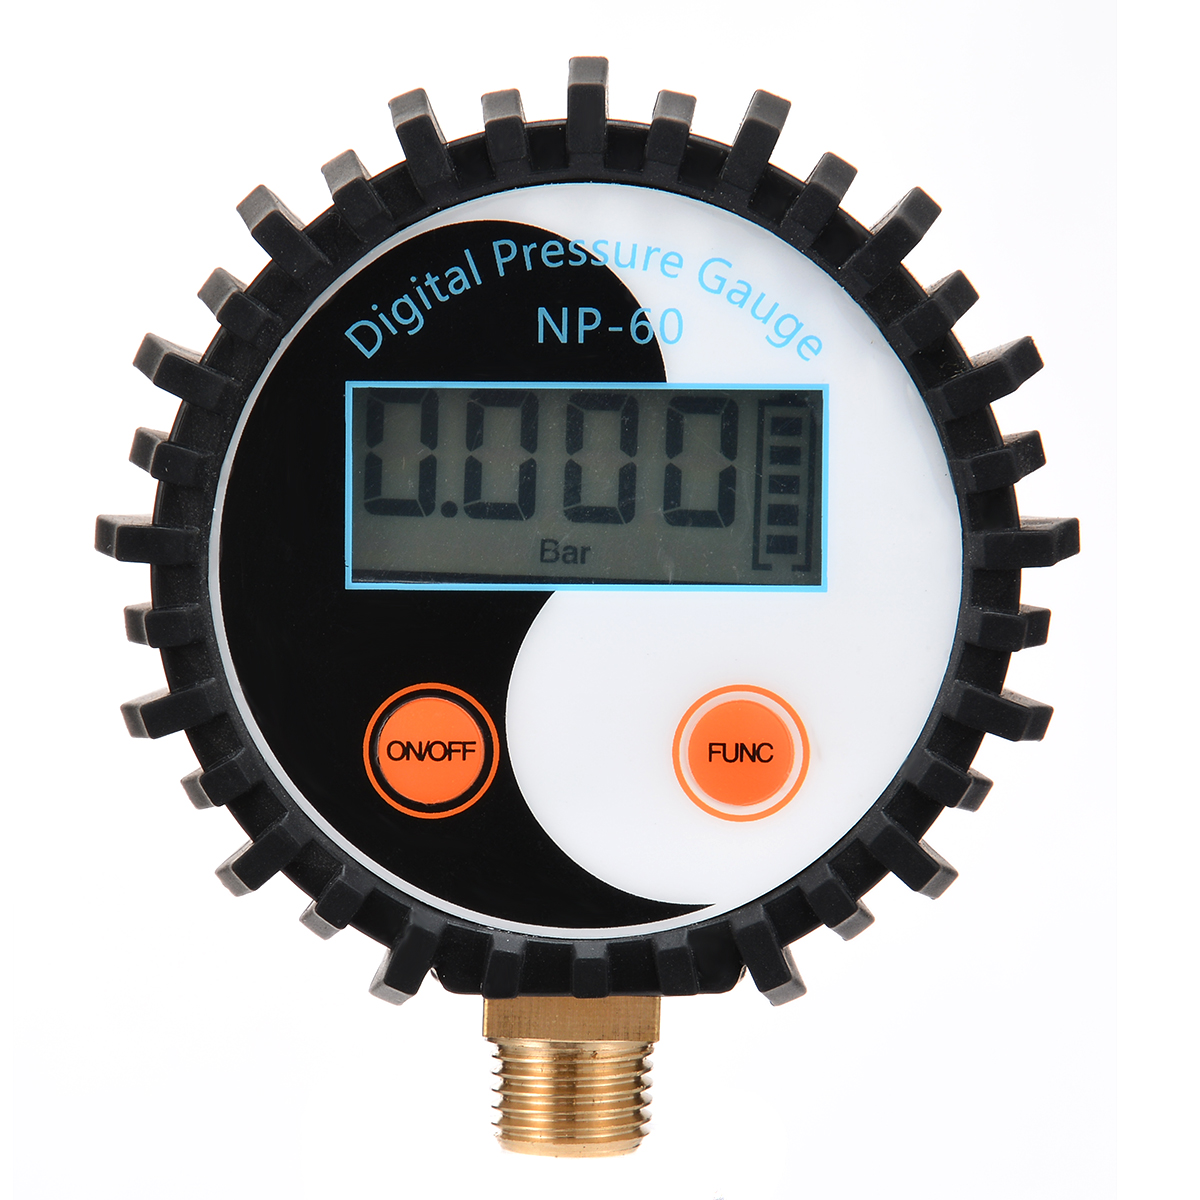 1pc Battery Power Digital Air Pressure Gauge Gas Pressure Gauge Tester Tool 0-200PSI NP-60 G1/4 with Vibration Resistance free shipping g1 ports air filter regulator model aw5000 10 with pressure gauge 5pcs in lot high flow rate in stock